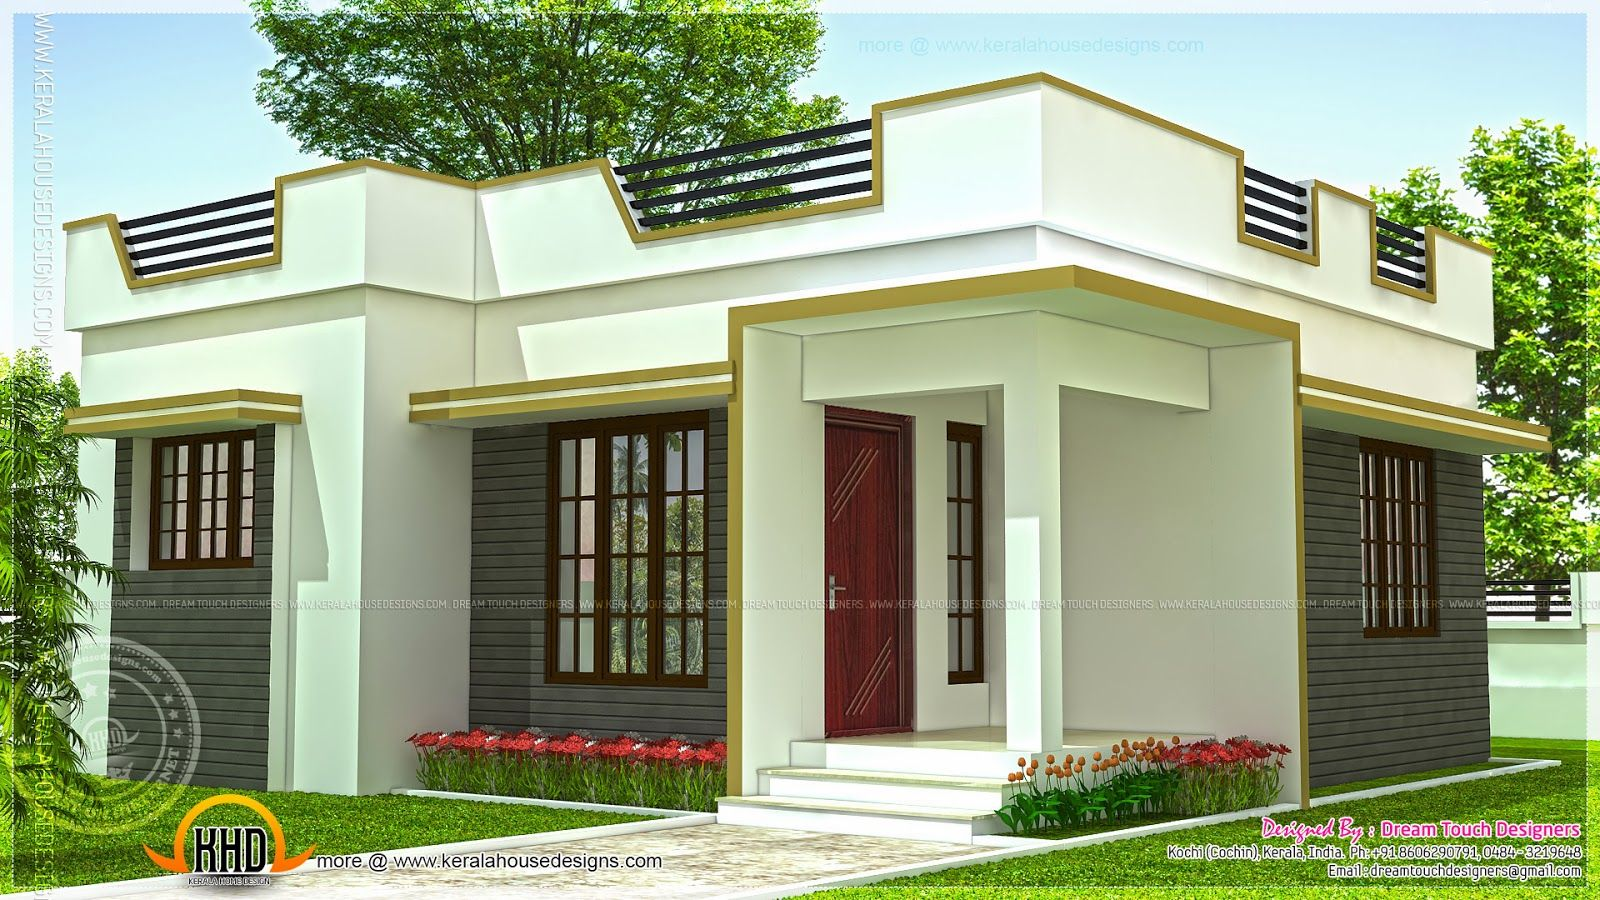 Lately 21 small house design kerala small house for Small indian house interior design photos